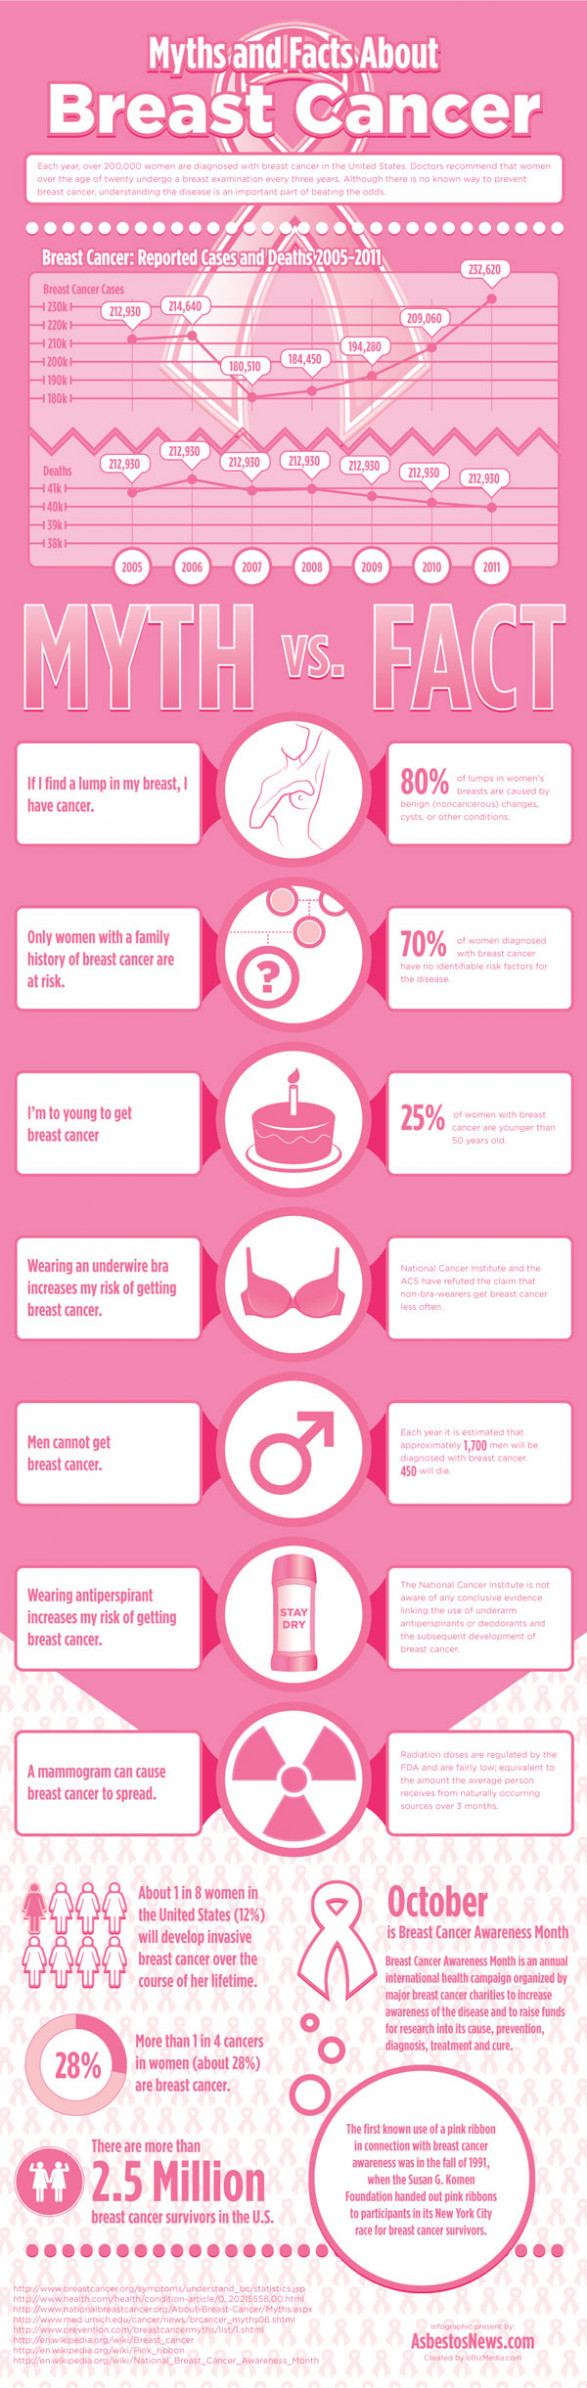 Breast Cancer Awareness Month: Myth vs Fact